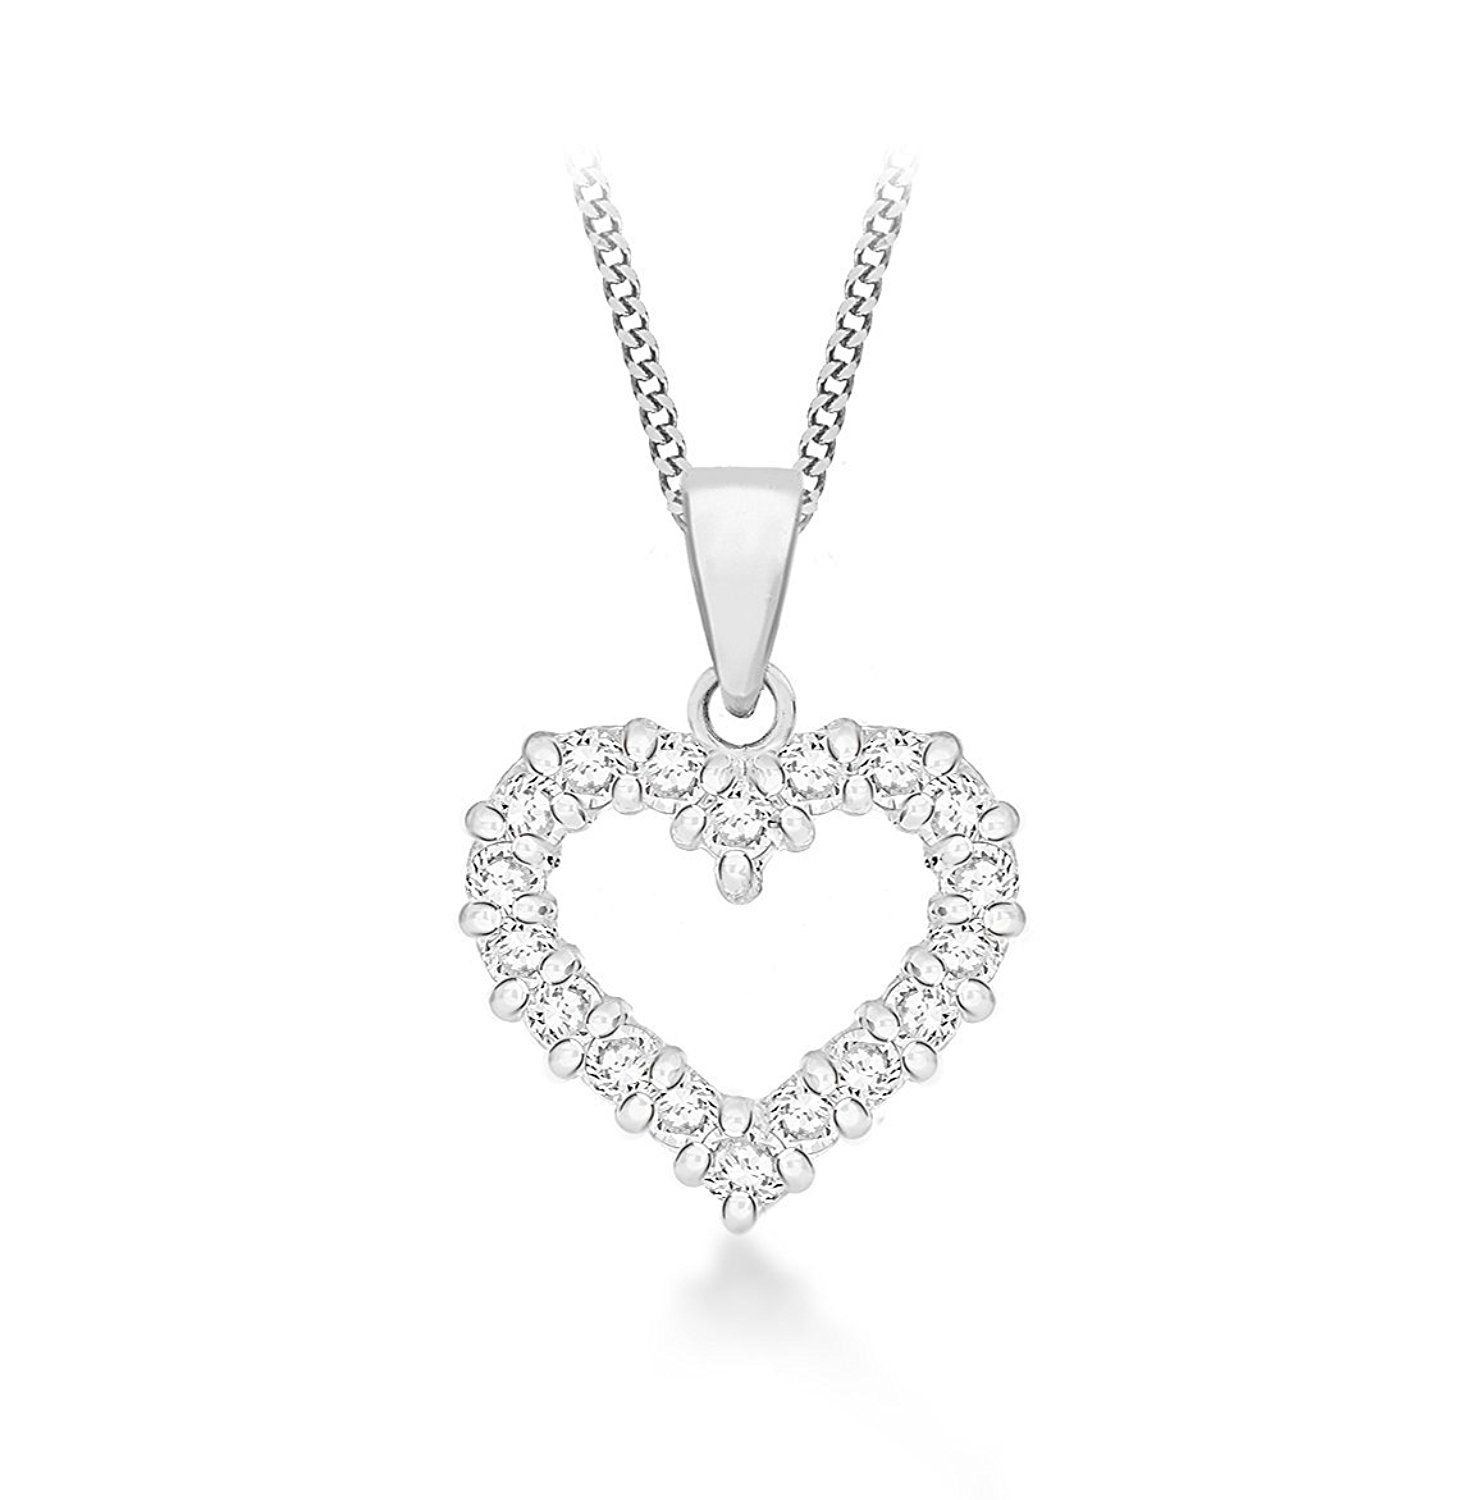 Tuscany Silver Sterling Silver Rhodium Plated Cubic Zirconia Flower Adjustable Necklace of Length 46cm NHFmV